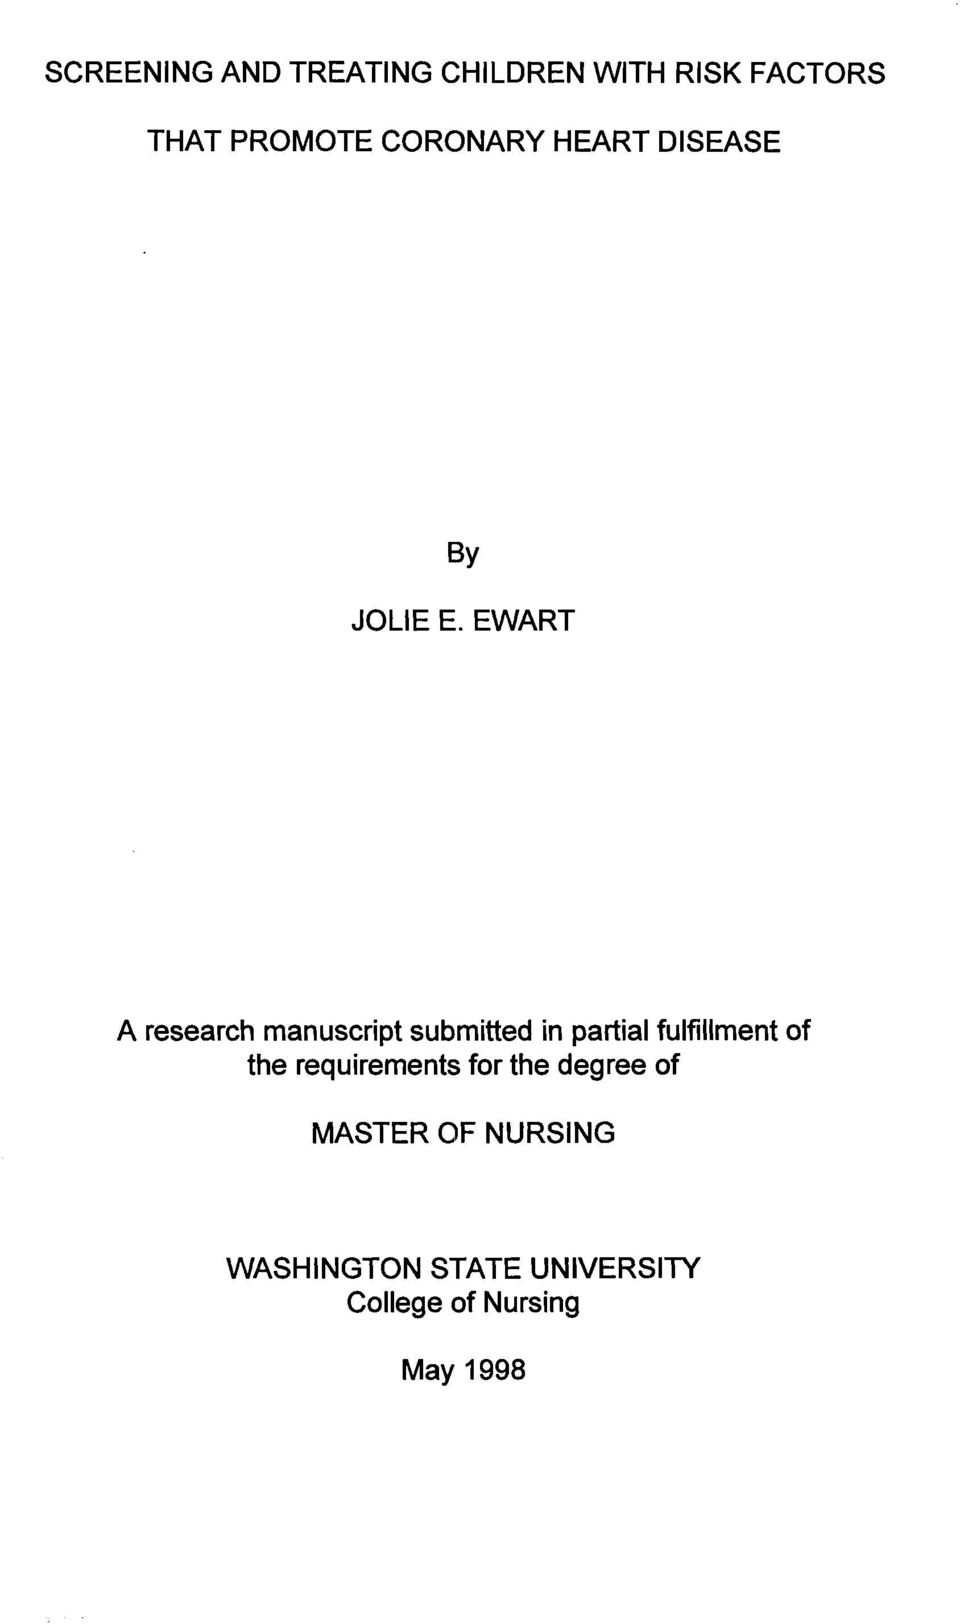 EWART A research manuscript submitted in partial fulfillment of the